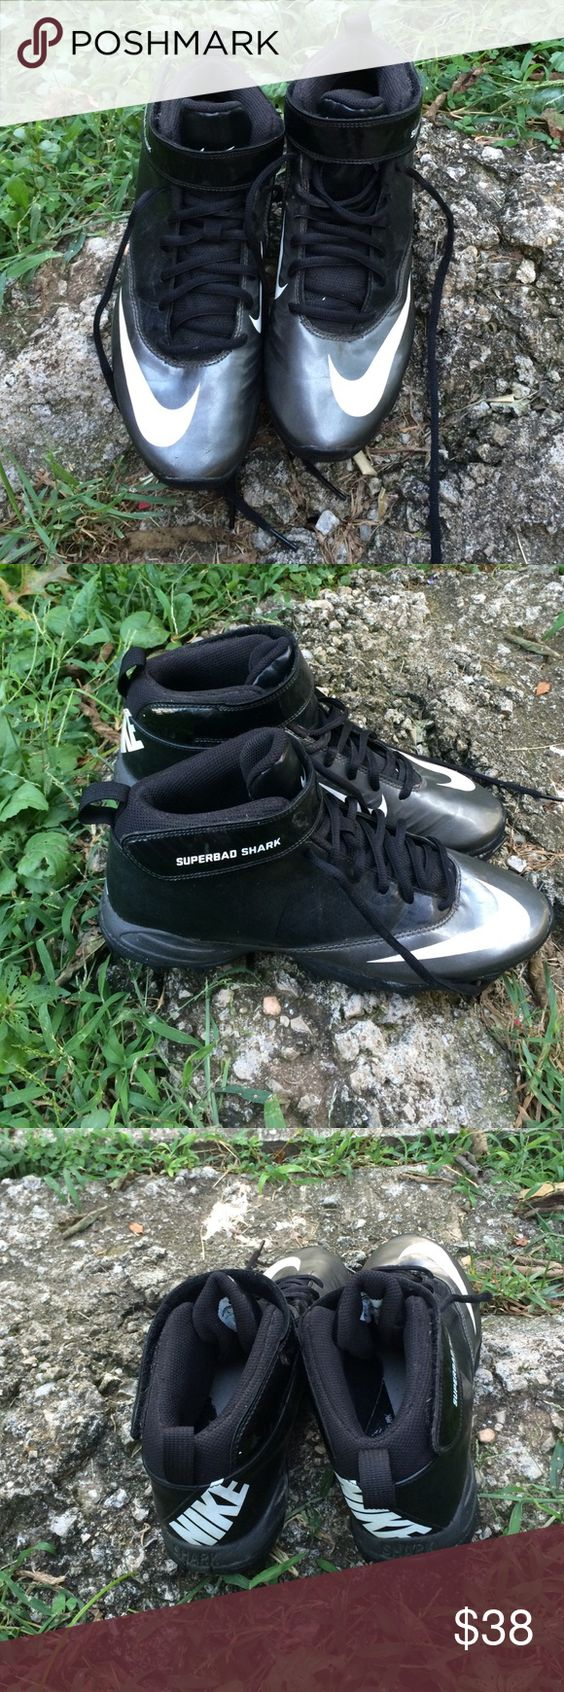 Nike Superbad shark Men's football cleats In lightly used condition,there's nothing wrong with this item.from a smoke free home:) Nike Shoes Athletic Shoes